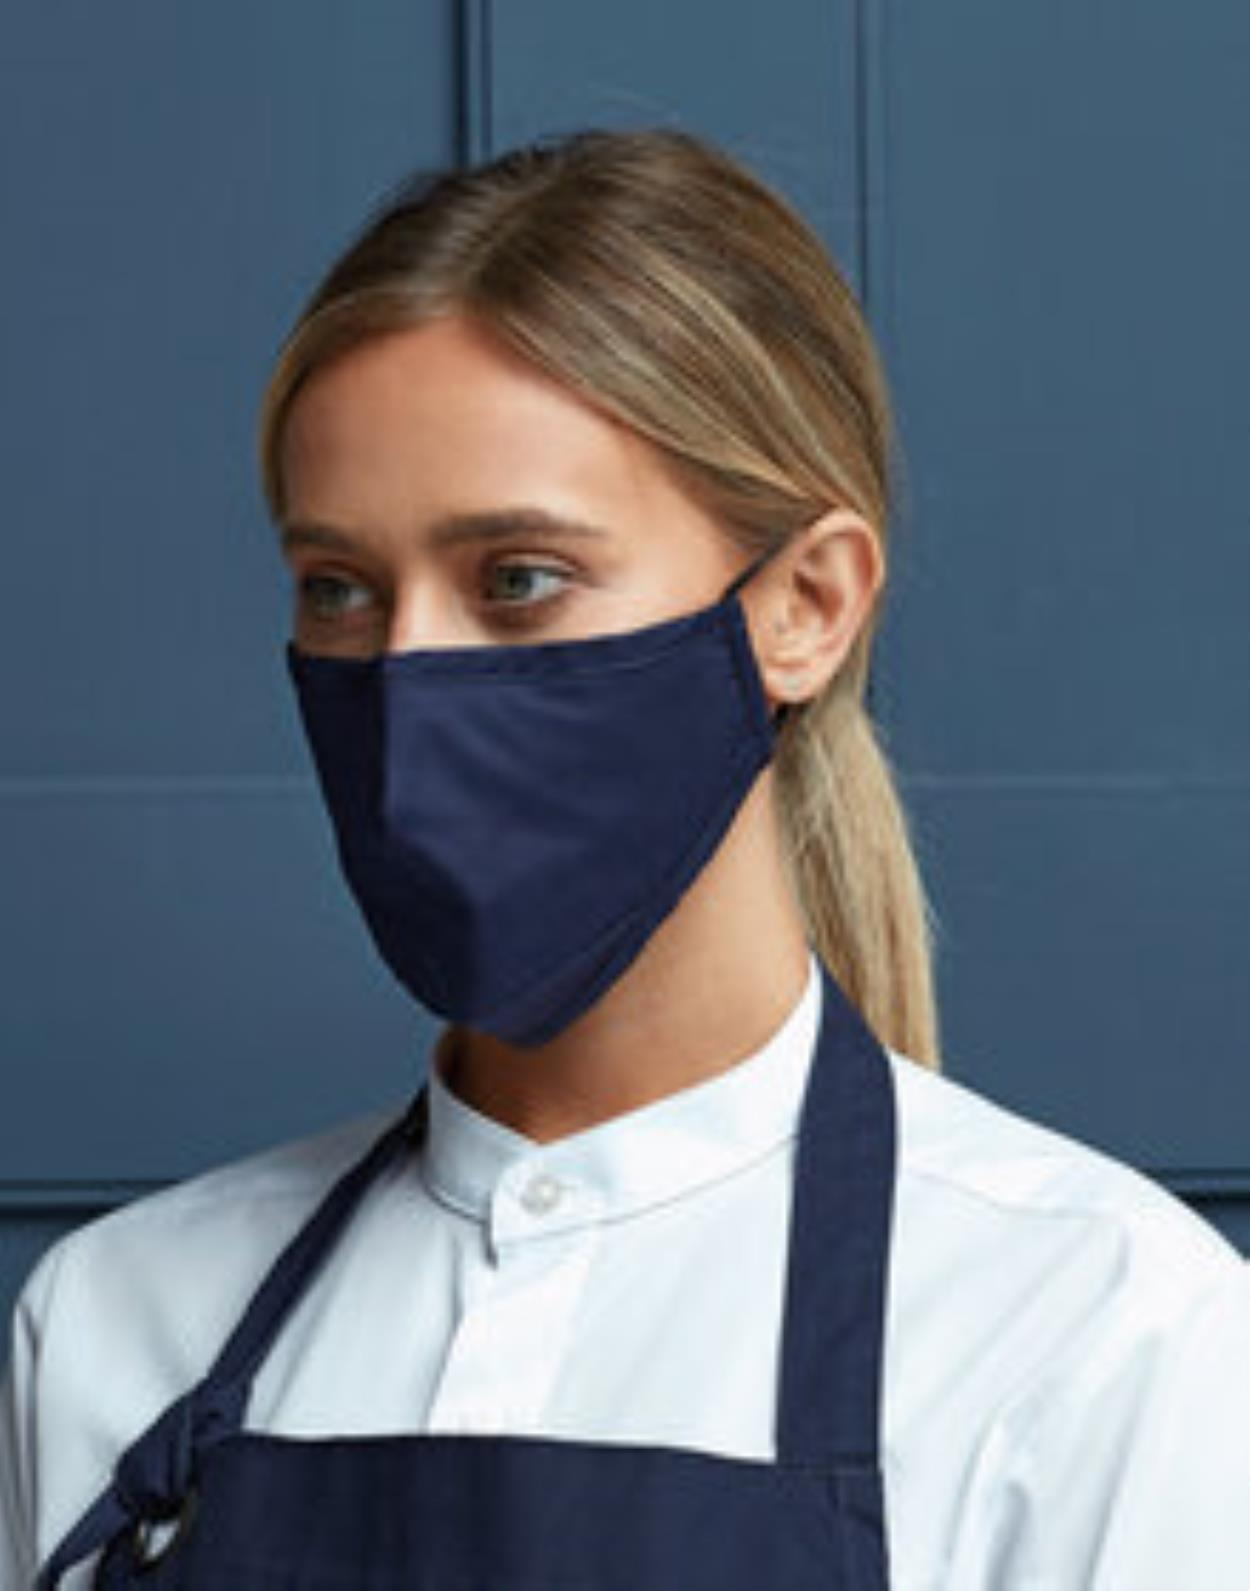 PR796 - Face Covering Protective 3 Layer Fabric Mask